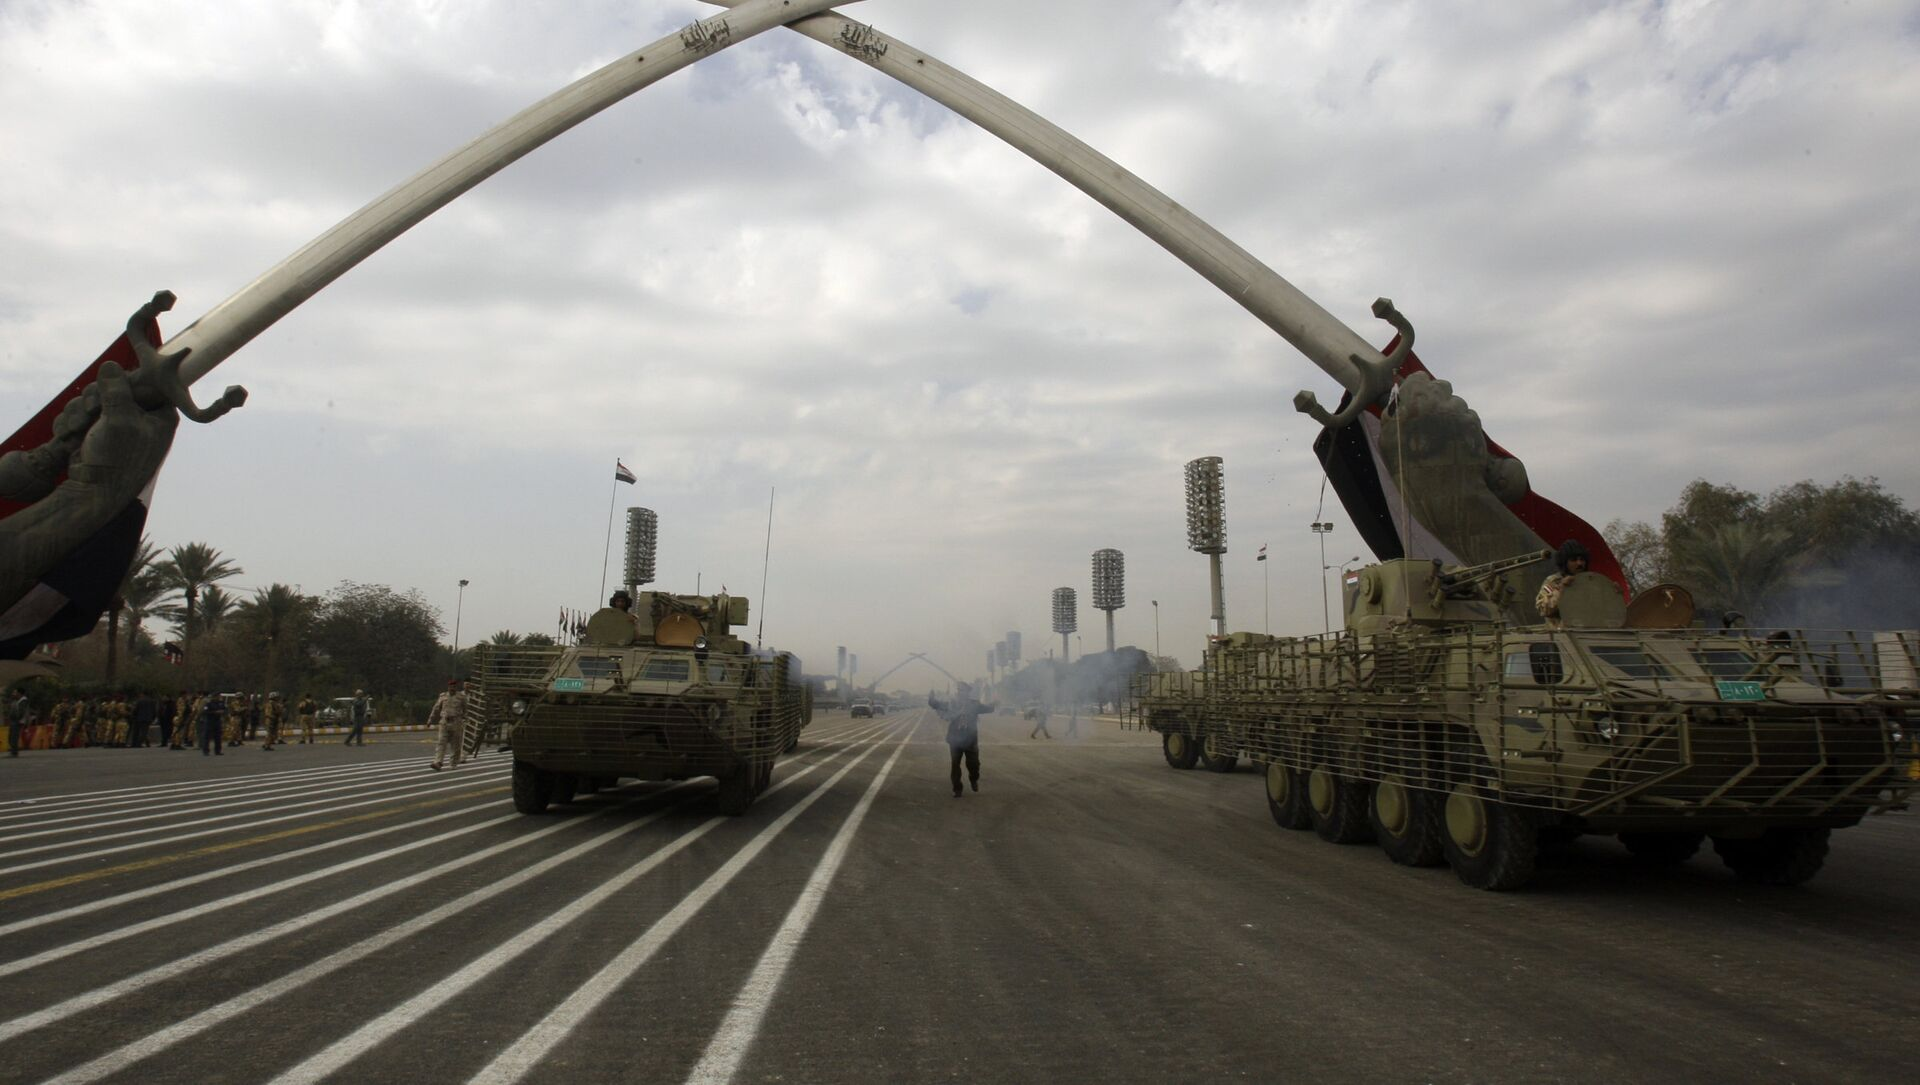 Iraqi army military vehicles march under the victory Arch landmark during a parade to mark the 91st Army Day in Baghdad on January 6, 2012, weeks after US troops completed their pullout - Sputnik International, 1920, 25.07.2021